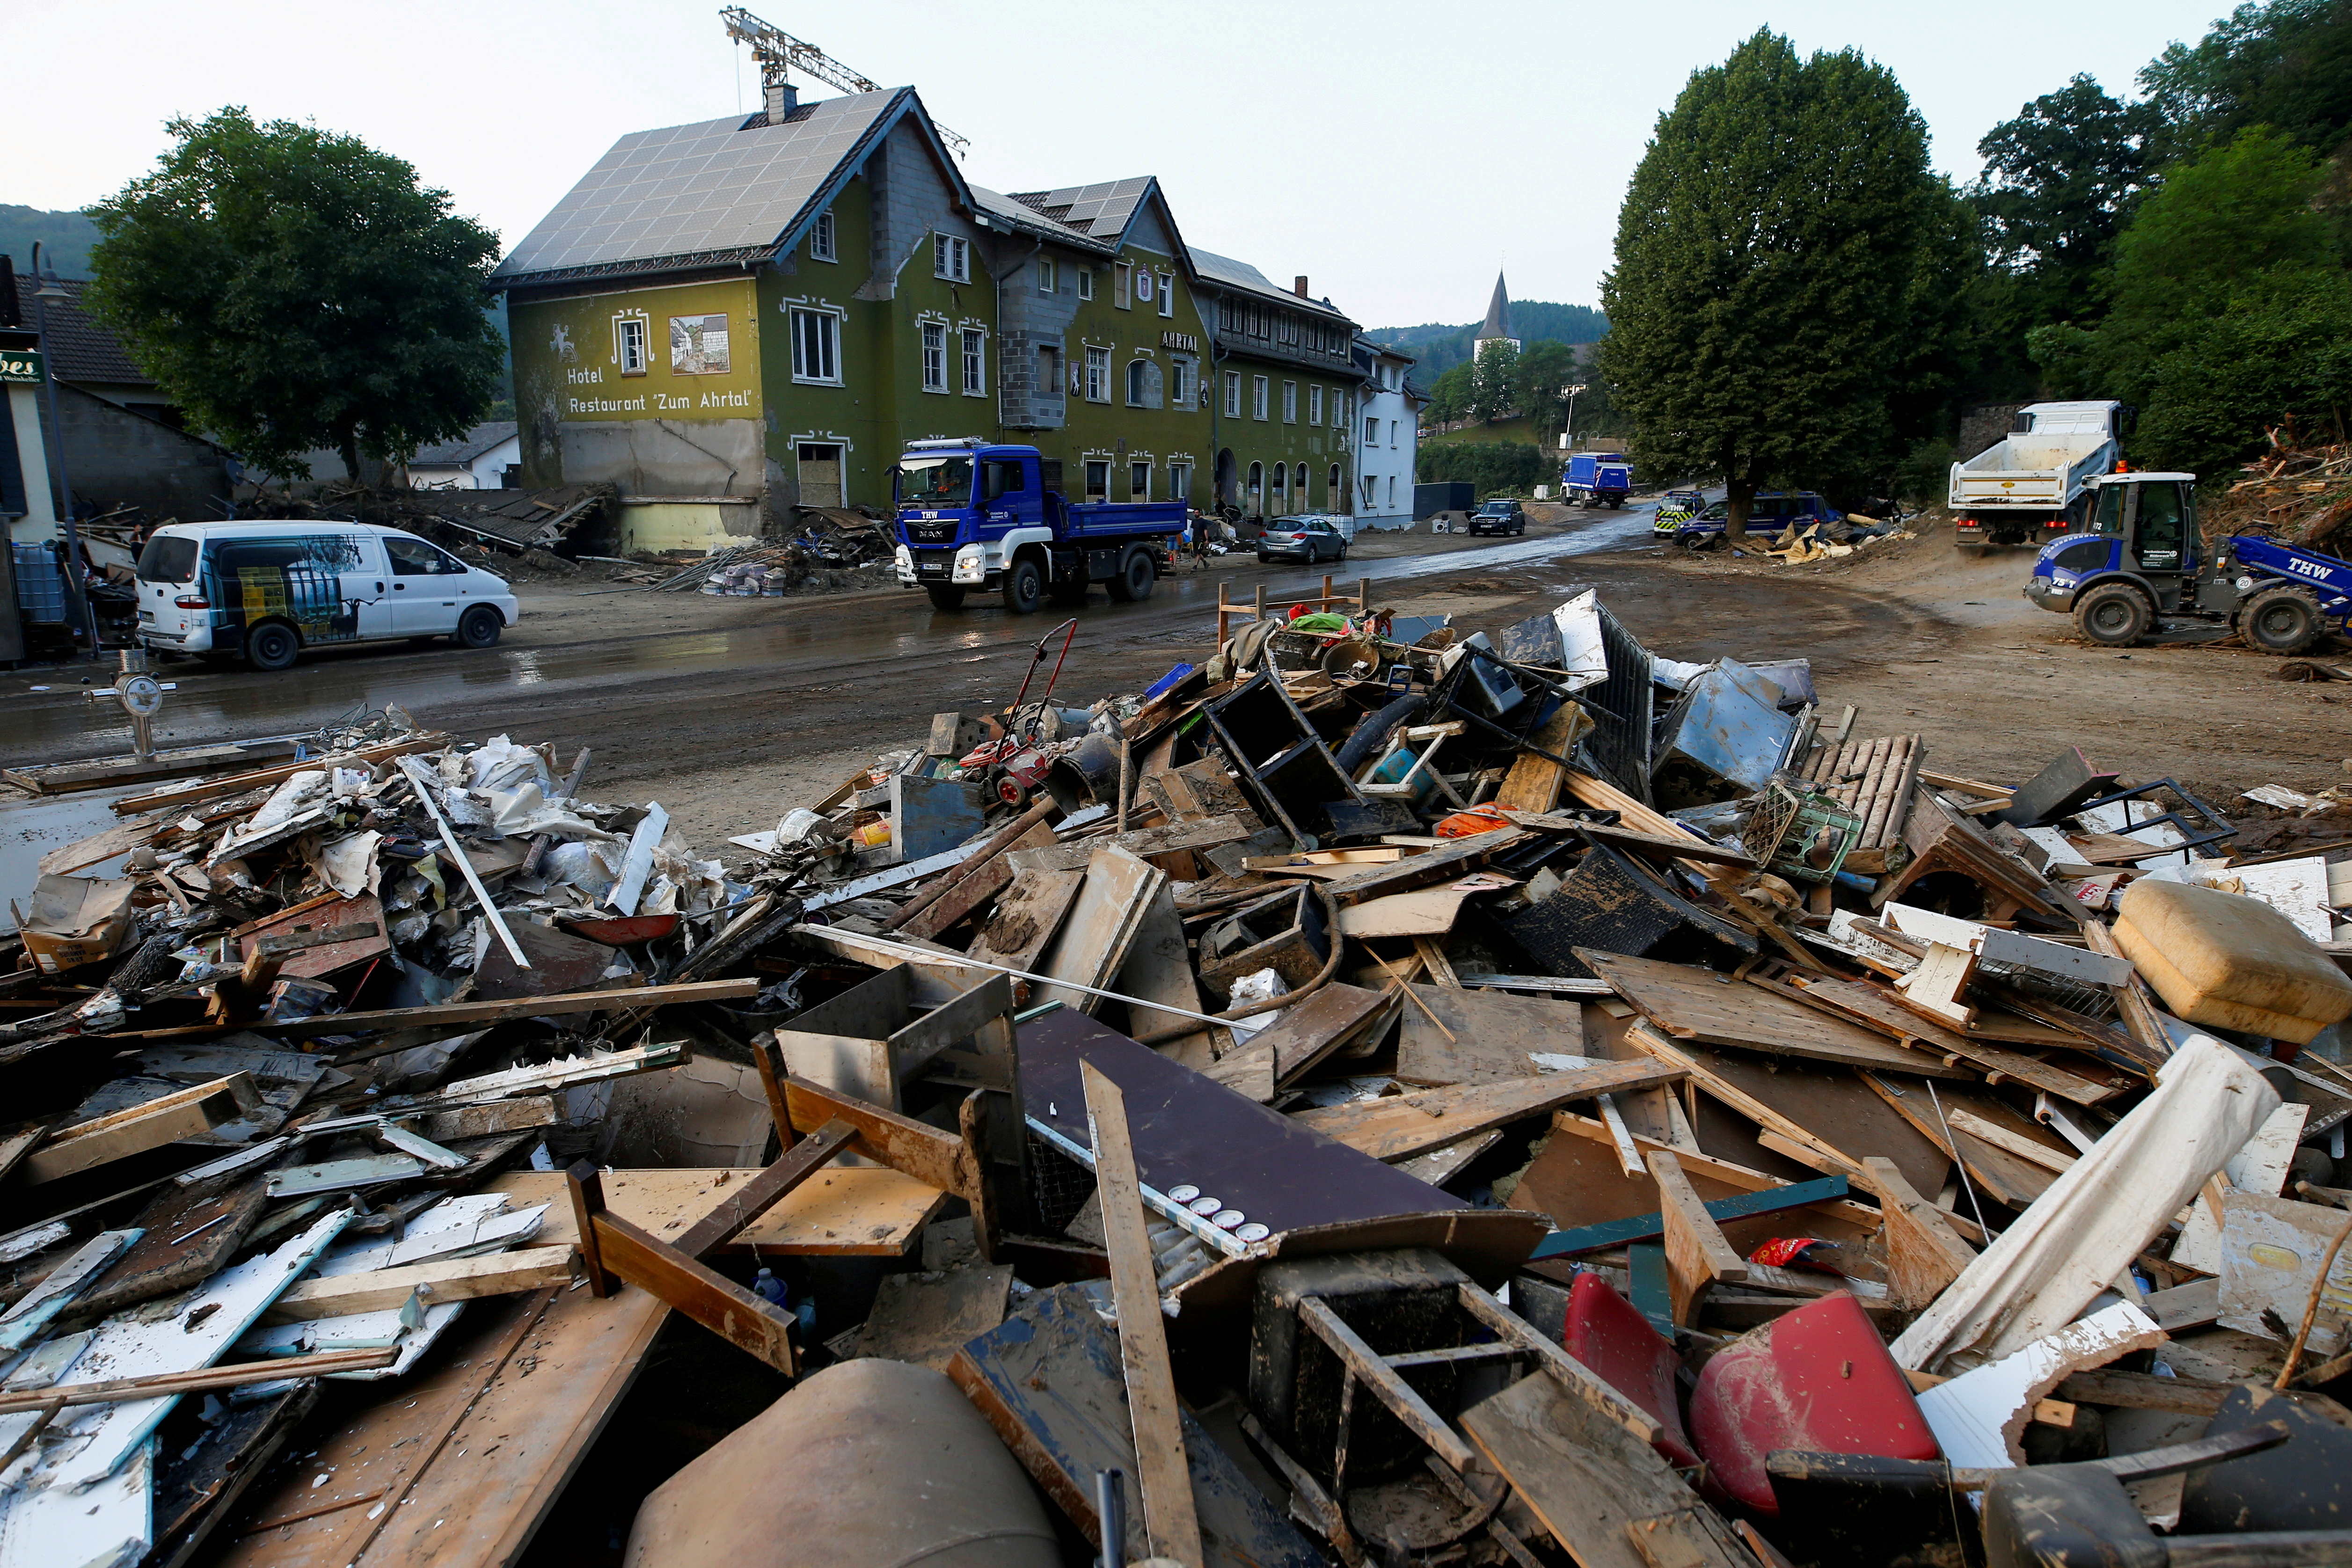 Debris in an area affected by floods caused by heavy rainfall in Schuld, Germany, July 20, 2021. REUTERS/Thilo Schmuelgen/File Photo